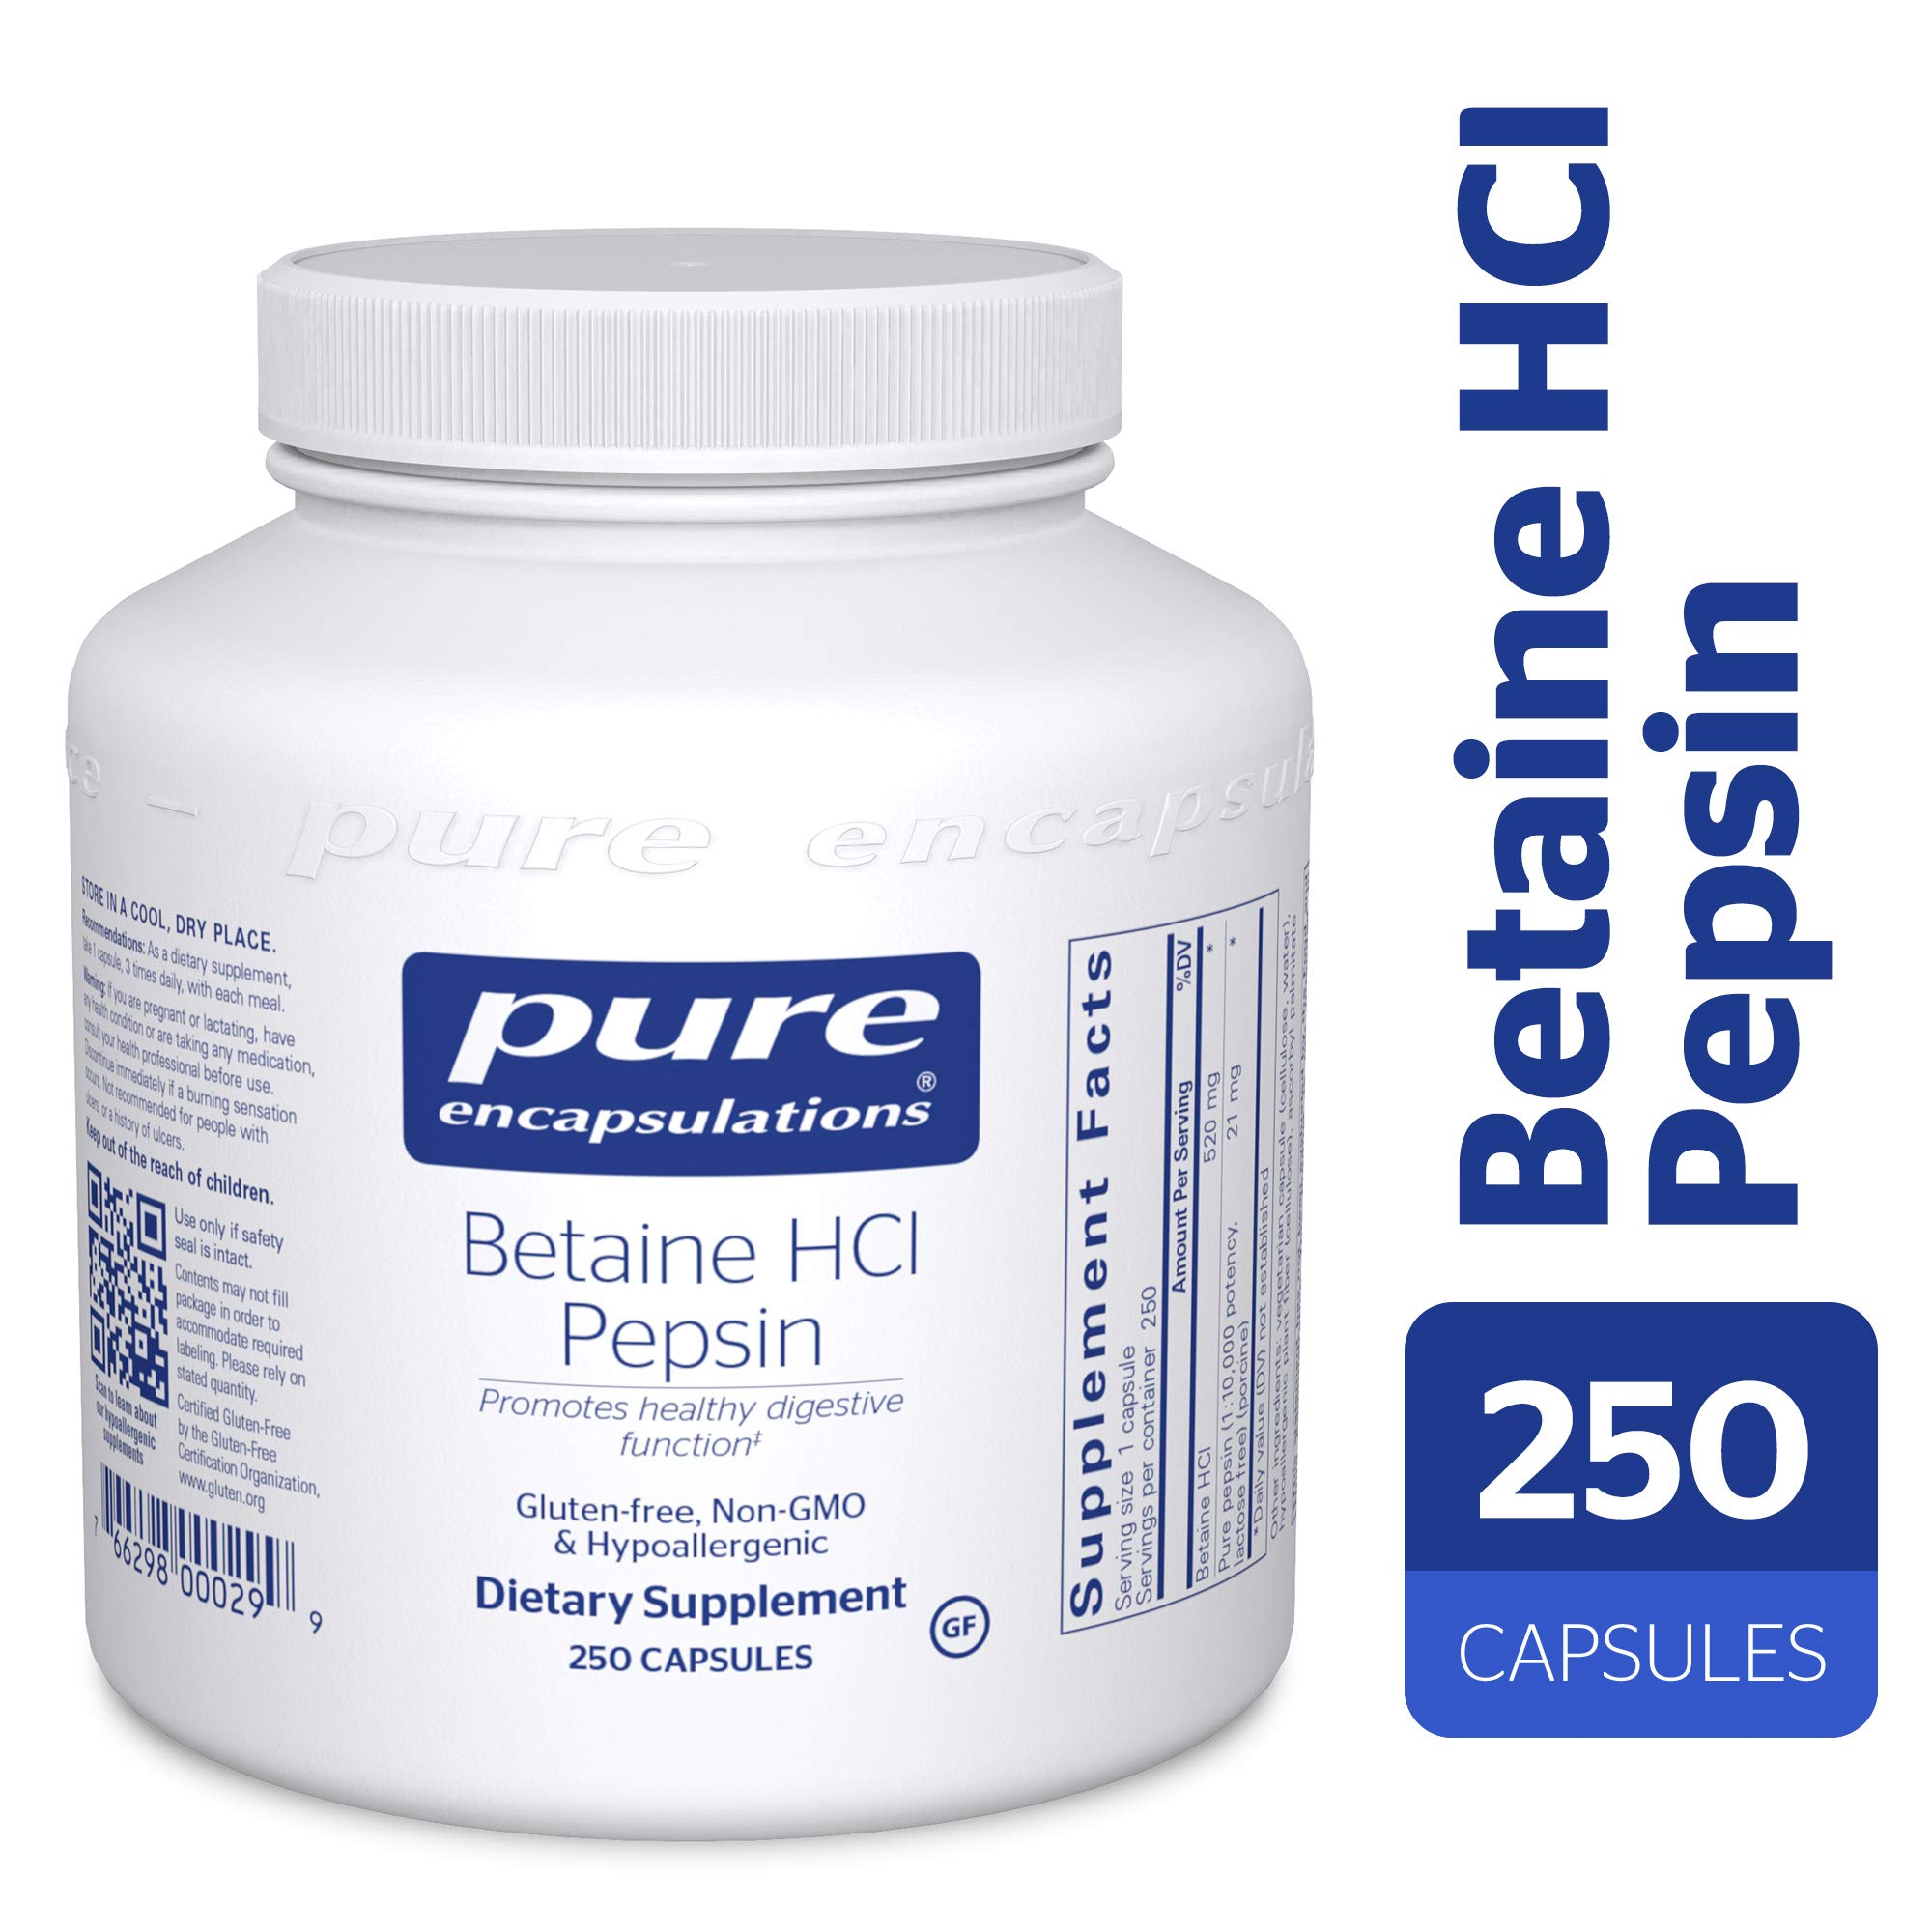 Pure Encapsulations - Betaine HCl/Pepsin - Hypoallergenic Dietary Supplement to Support a Healthy Digestive Tract* - 250 Capsules